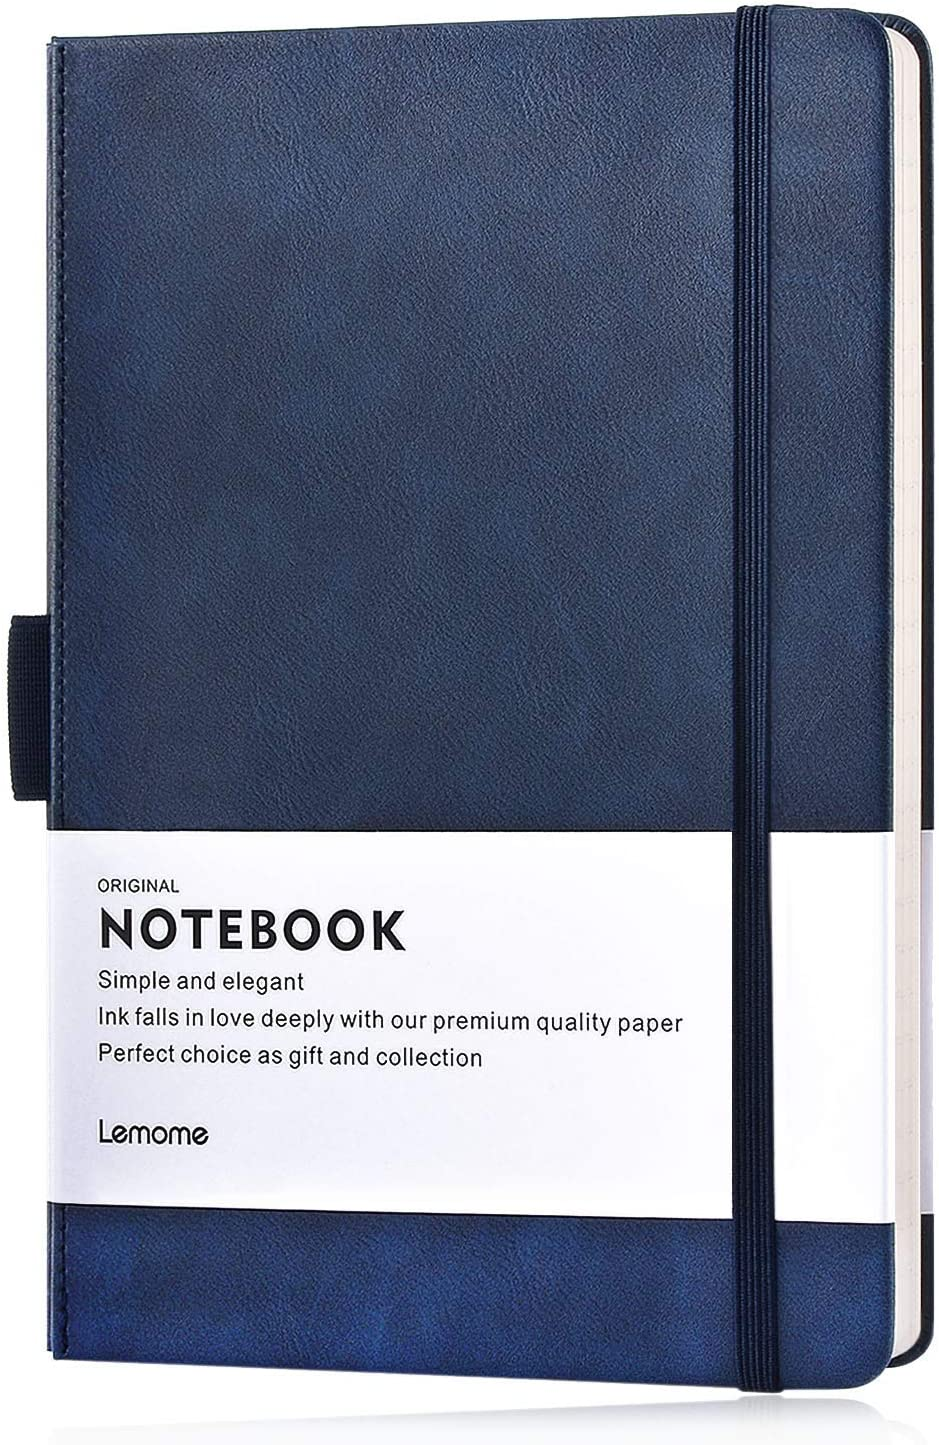 Lemome Thick Classic Notebook with Pen Loop A5 Wide Ruled Hardcover Writing Notebook with Pocket + Page Dividers Gifts, Banded, Large, 180 Pages, 8.4 x 5.7 in